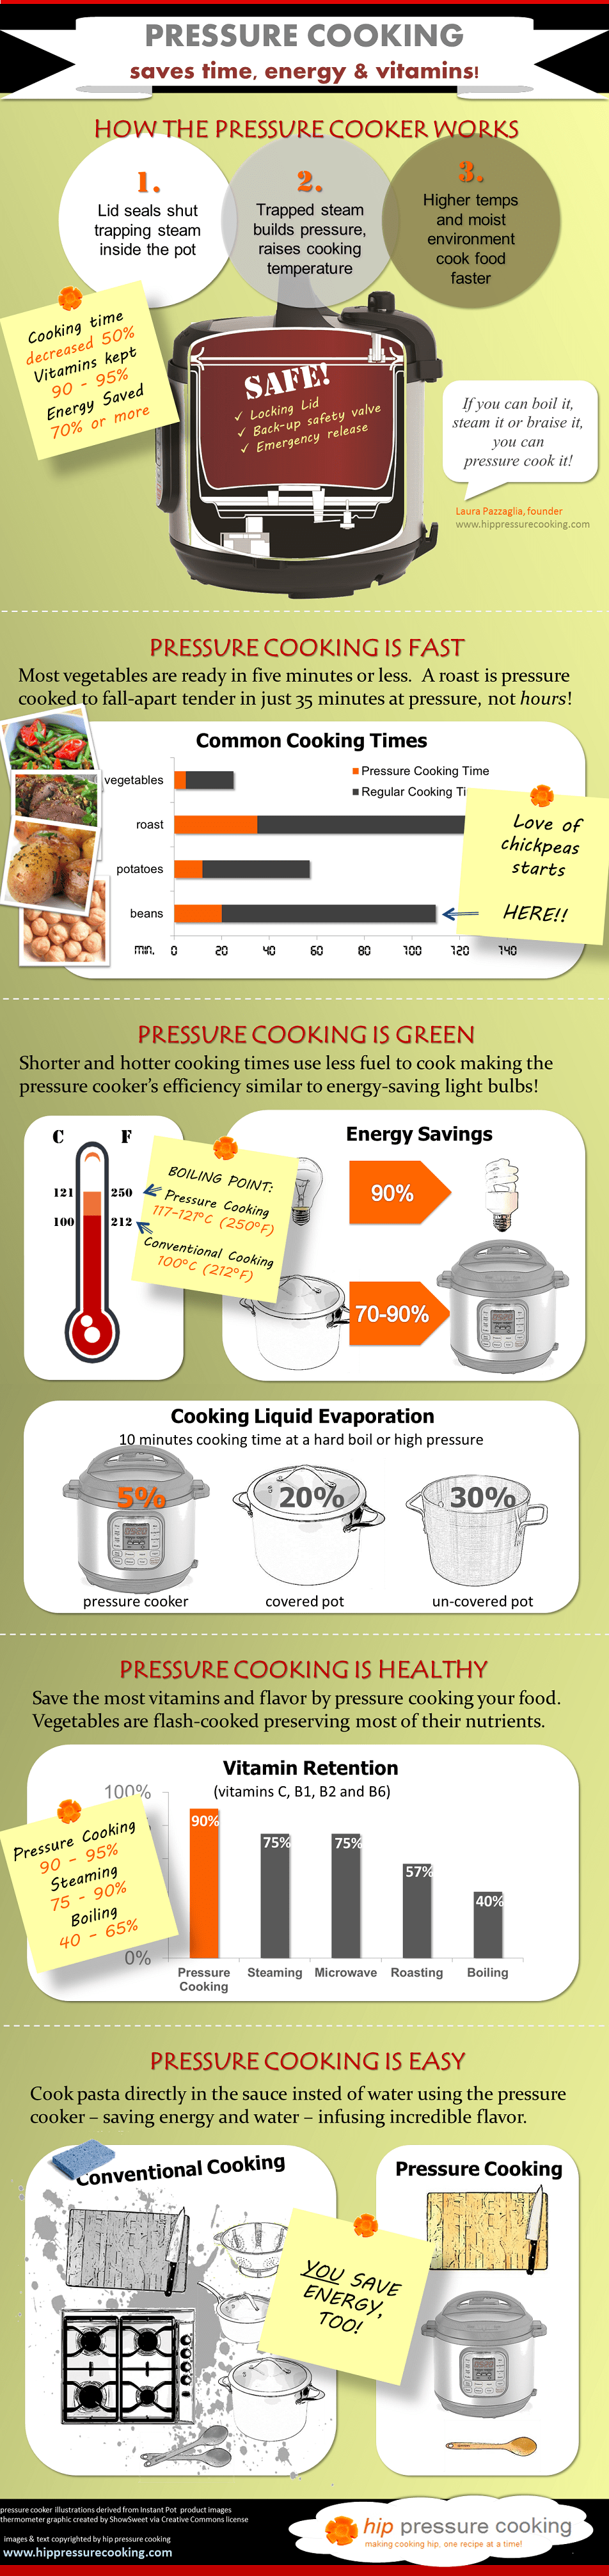 electric pressure cooker benefits infographic